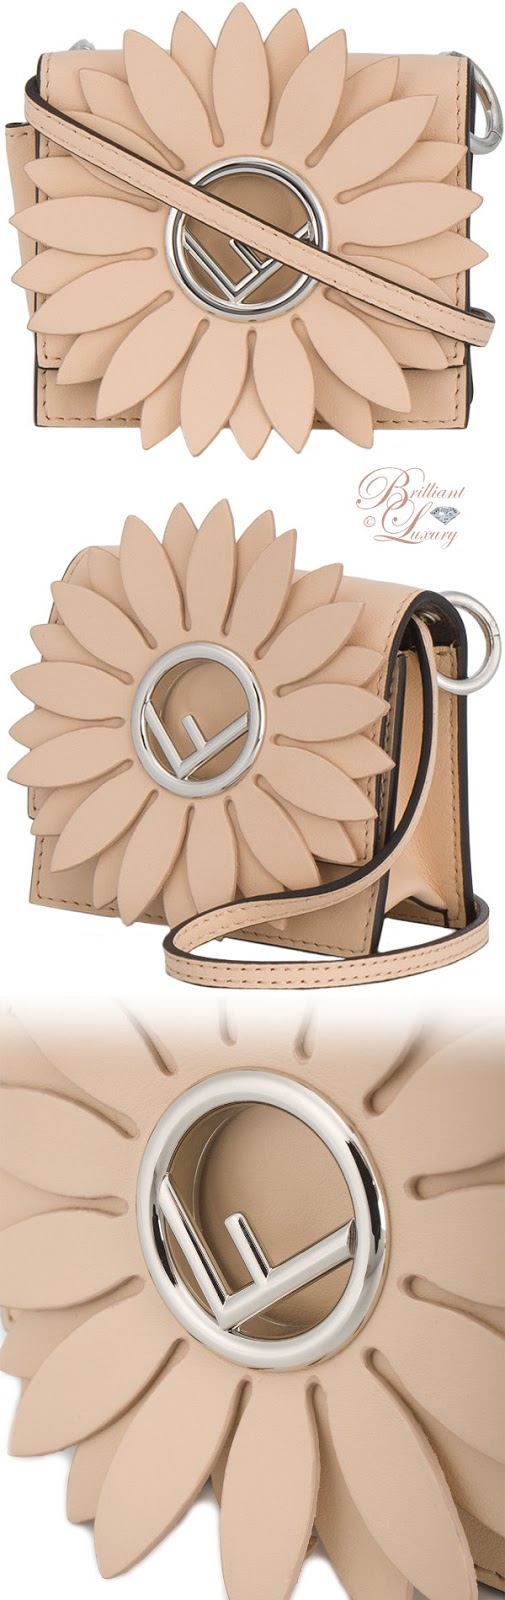 Brilliant Luxury ♦ Fendi Kan I F micro pink leather bag